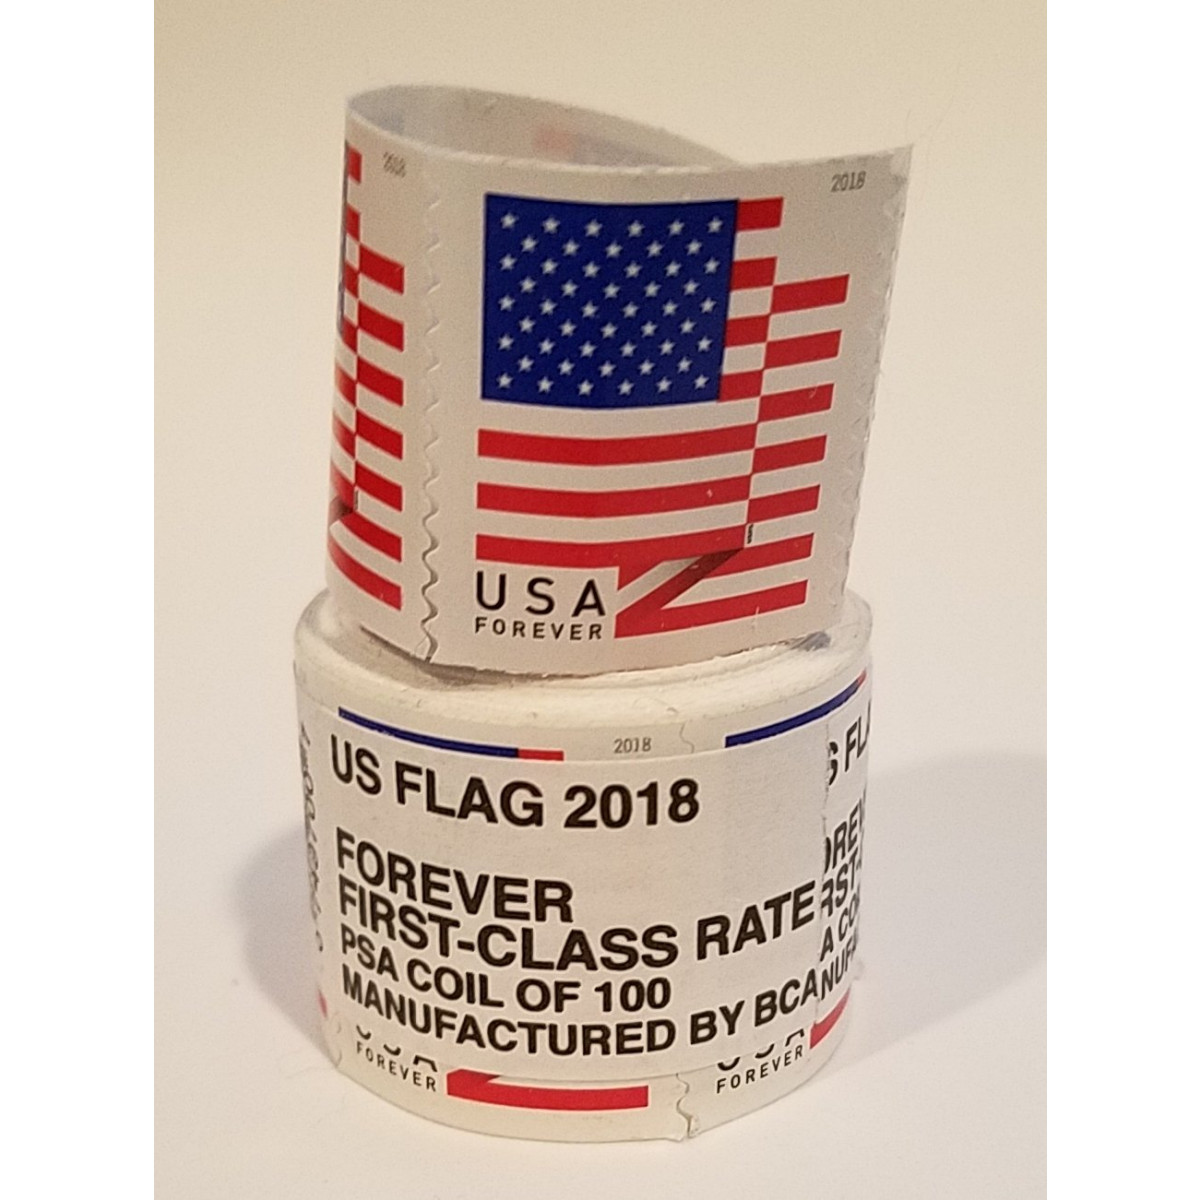 Usps Forever Stamps Coil Of 100 Us Flag Postage Stamps 2017 Or 2018 Roll